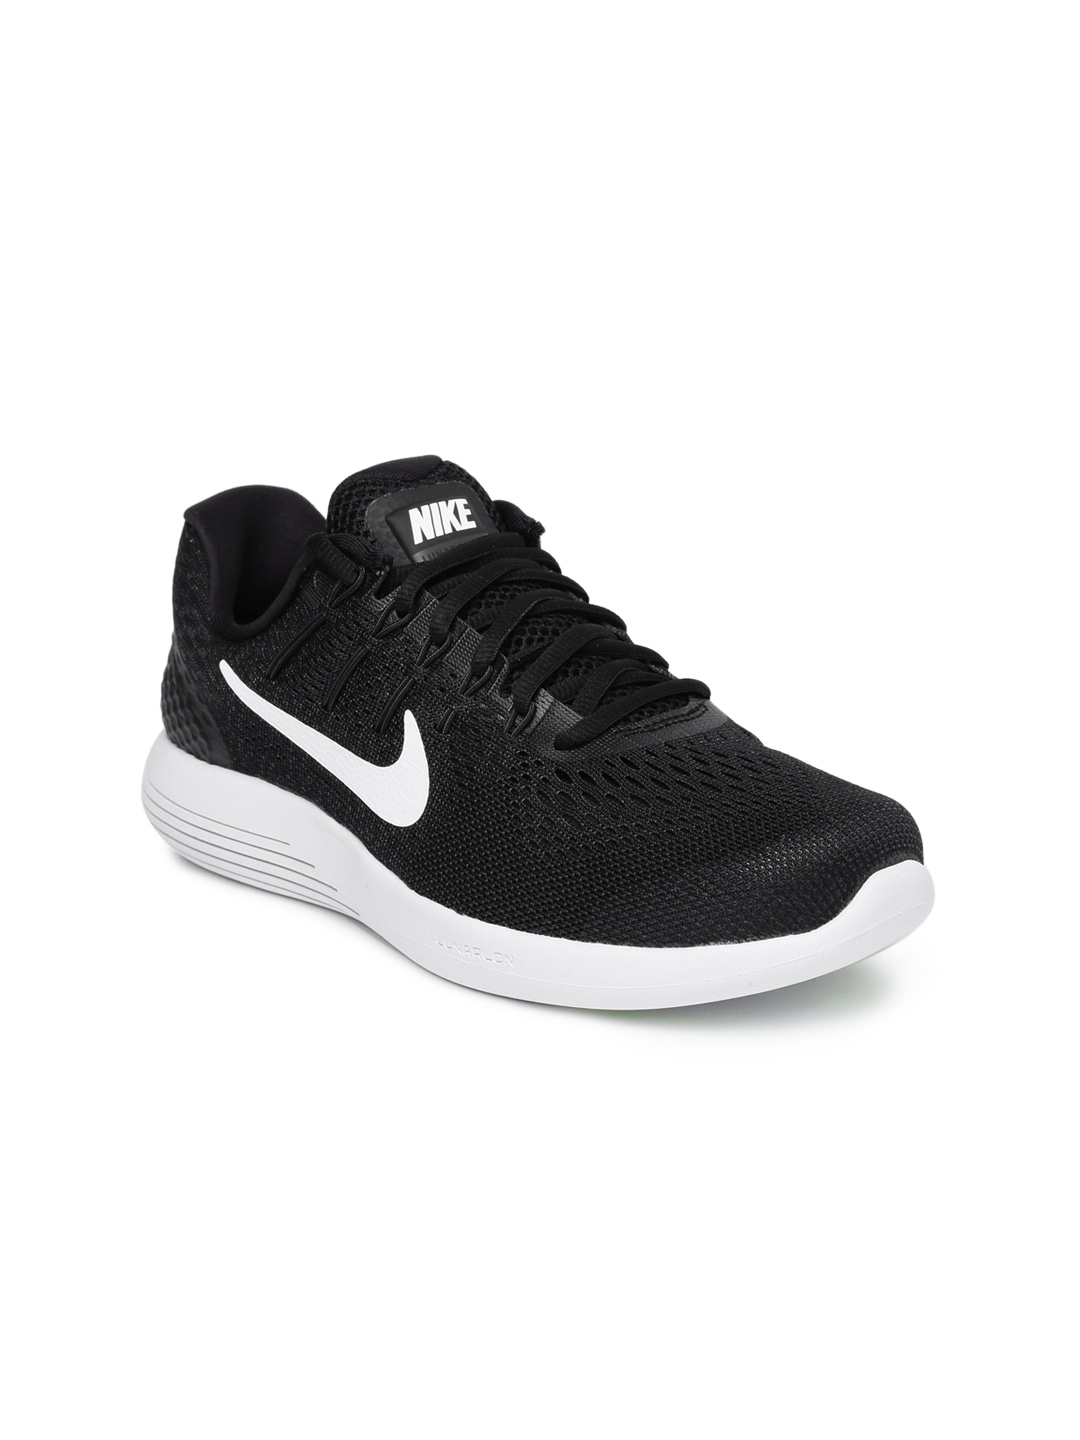 Elegant Sneakerheadcom This Website Features A Range Of Nike Footwear Categories, From Sport And Training Styles To Retro Basketball Shoes Sneakerhead Also Offers Both Womens And Mens Sneaker Styles  Some At 50 Percent Off And Up